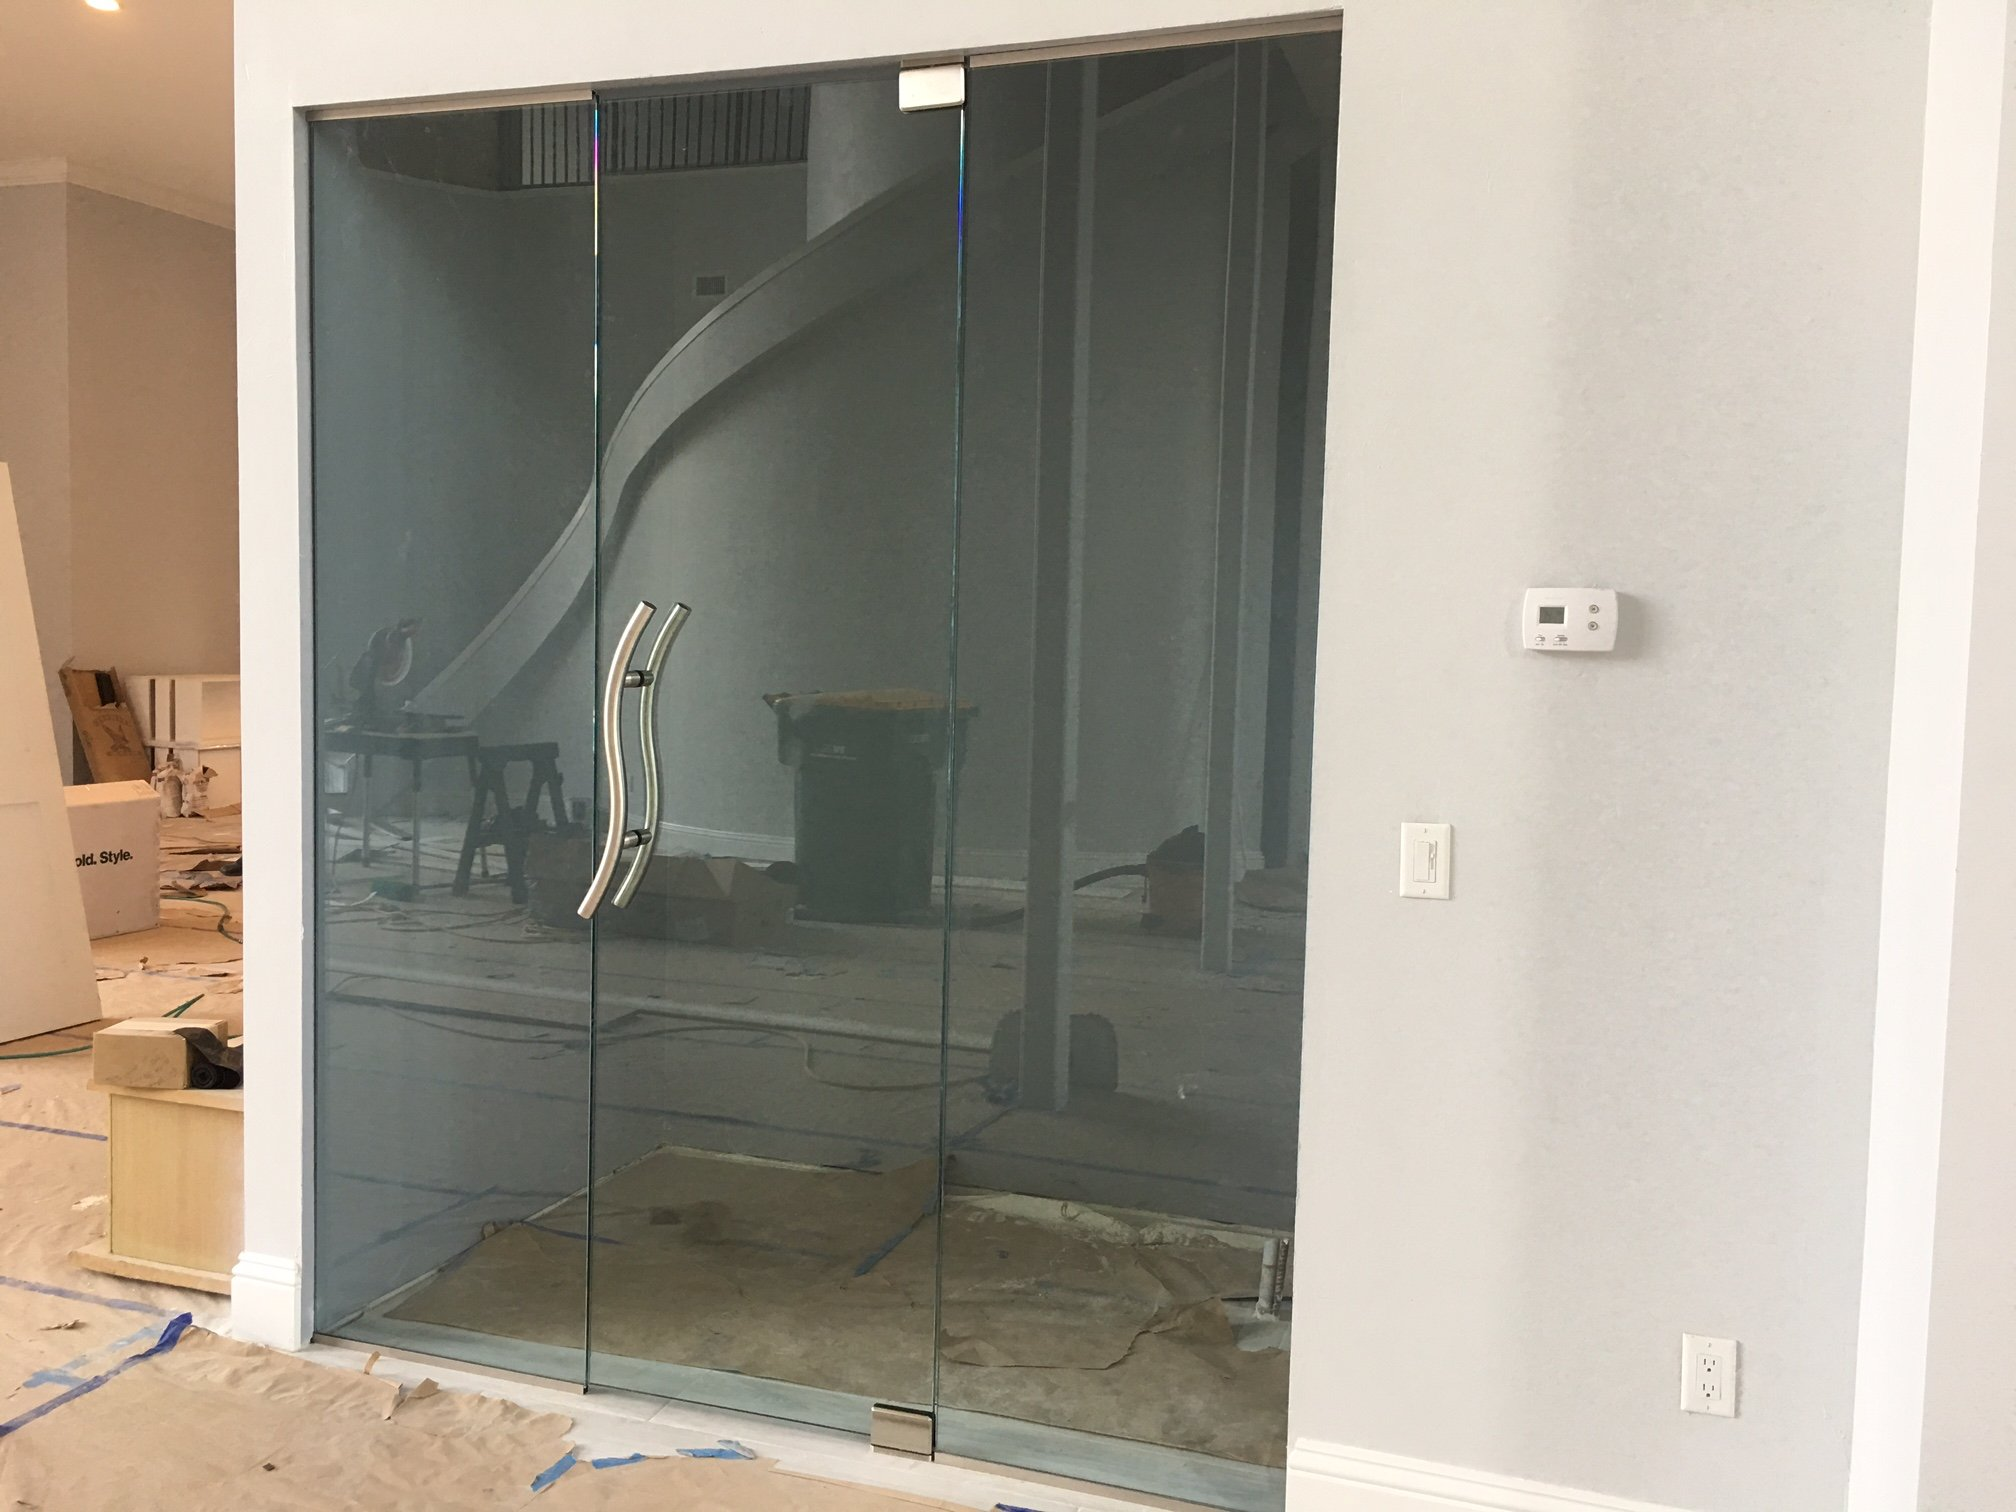 2016 10 commercial storefront glass doors - Glass Wall